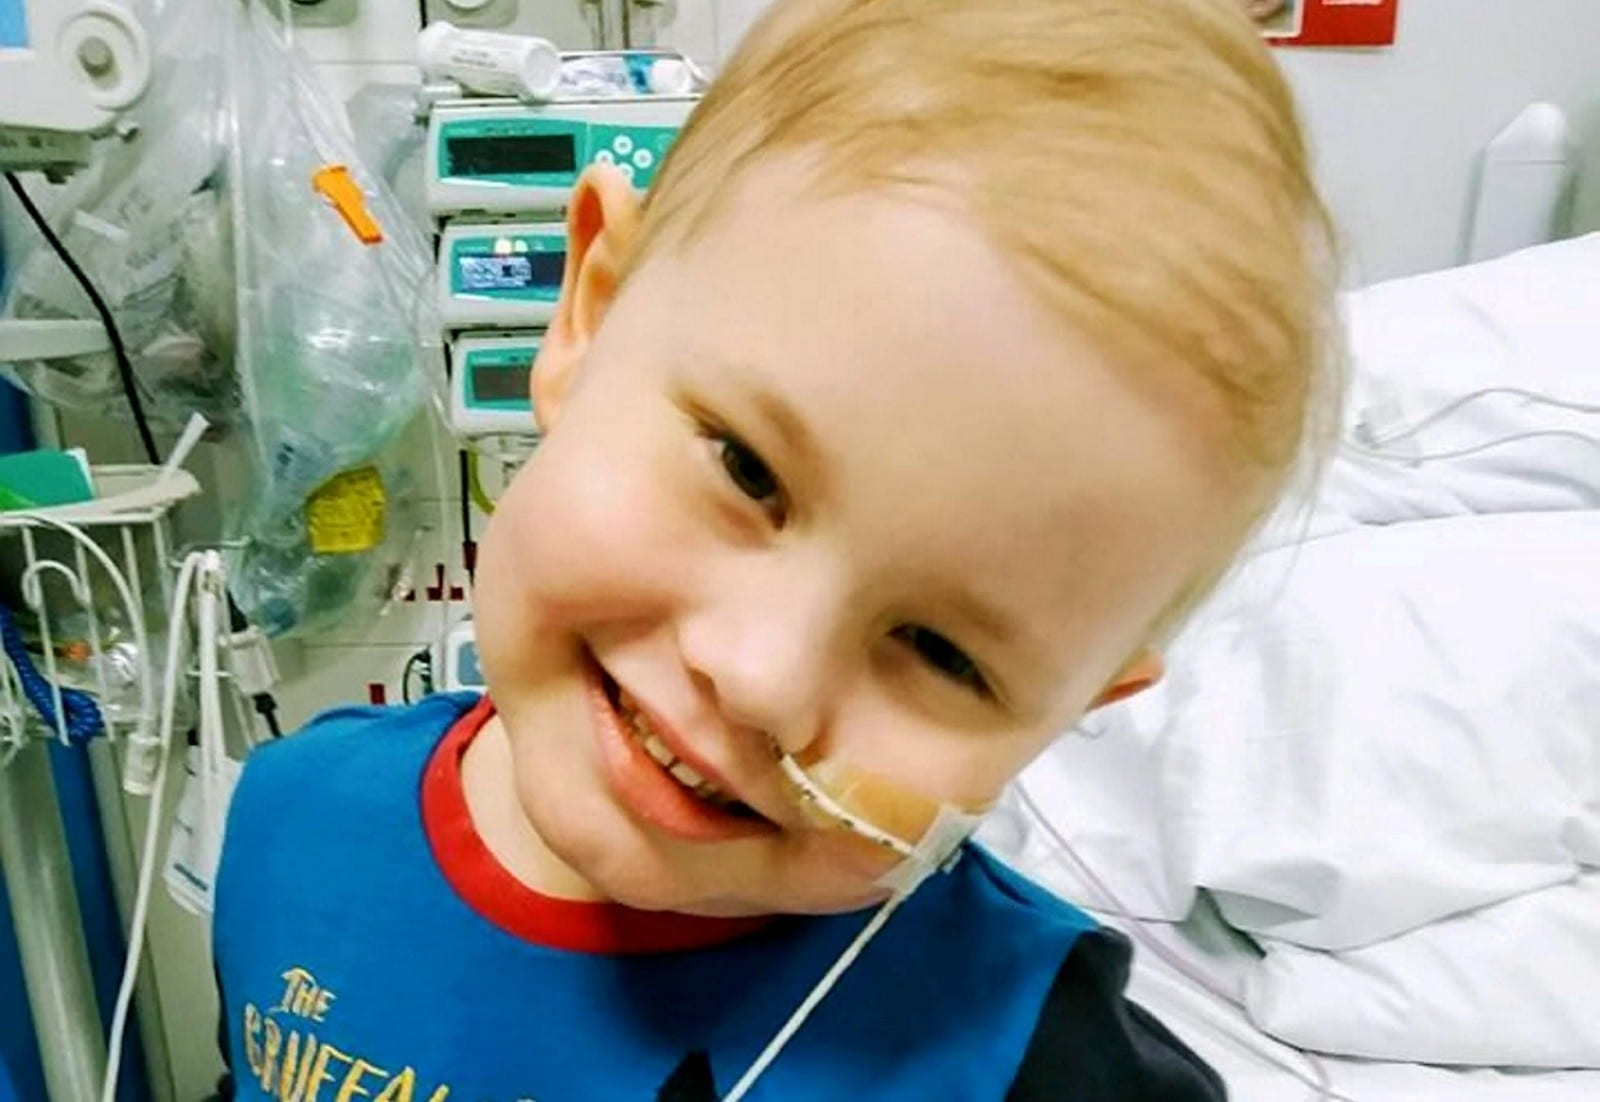 'This Is A Miracle' - Parents Of Five-Year-Old Leukaemia Patient Oscar Saxelby-Lee Reveal He Is Cancer Free Following Treatment In Singapore